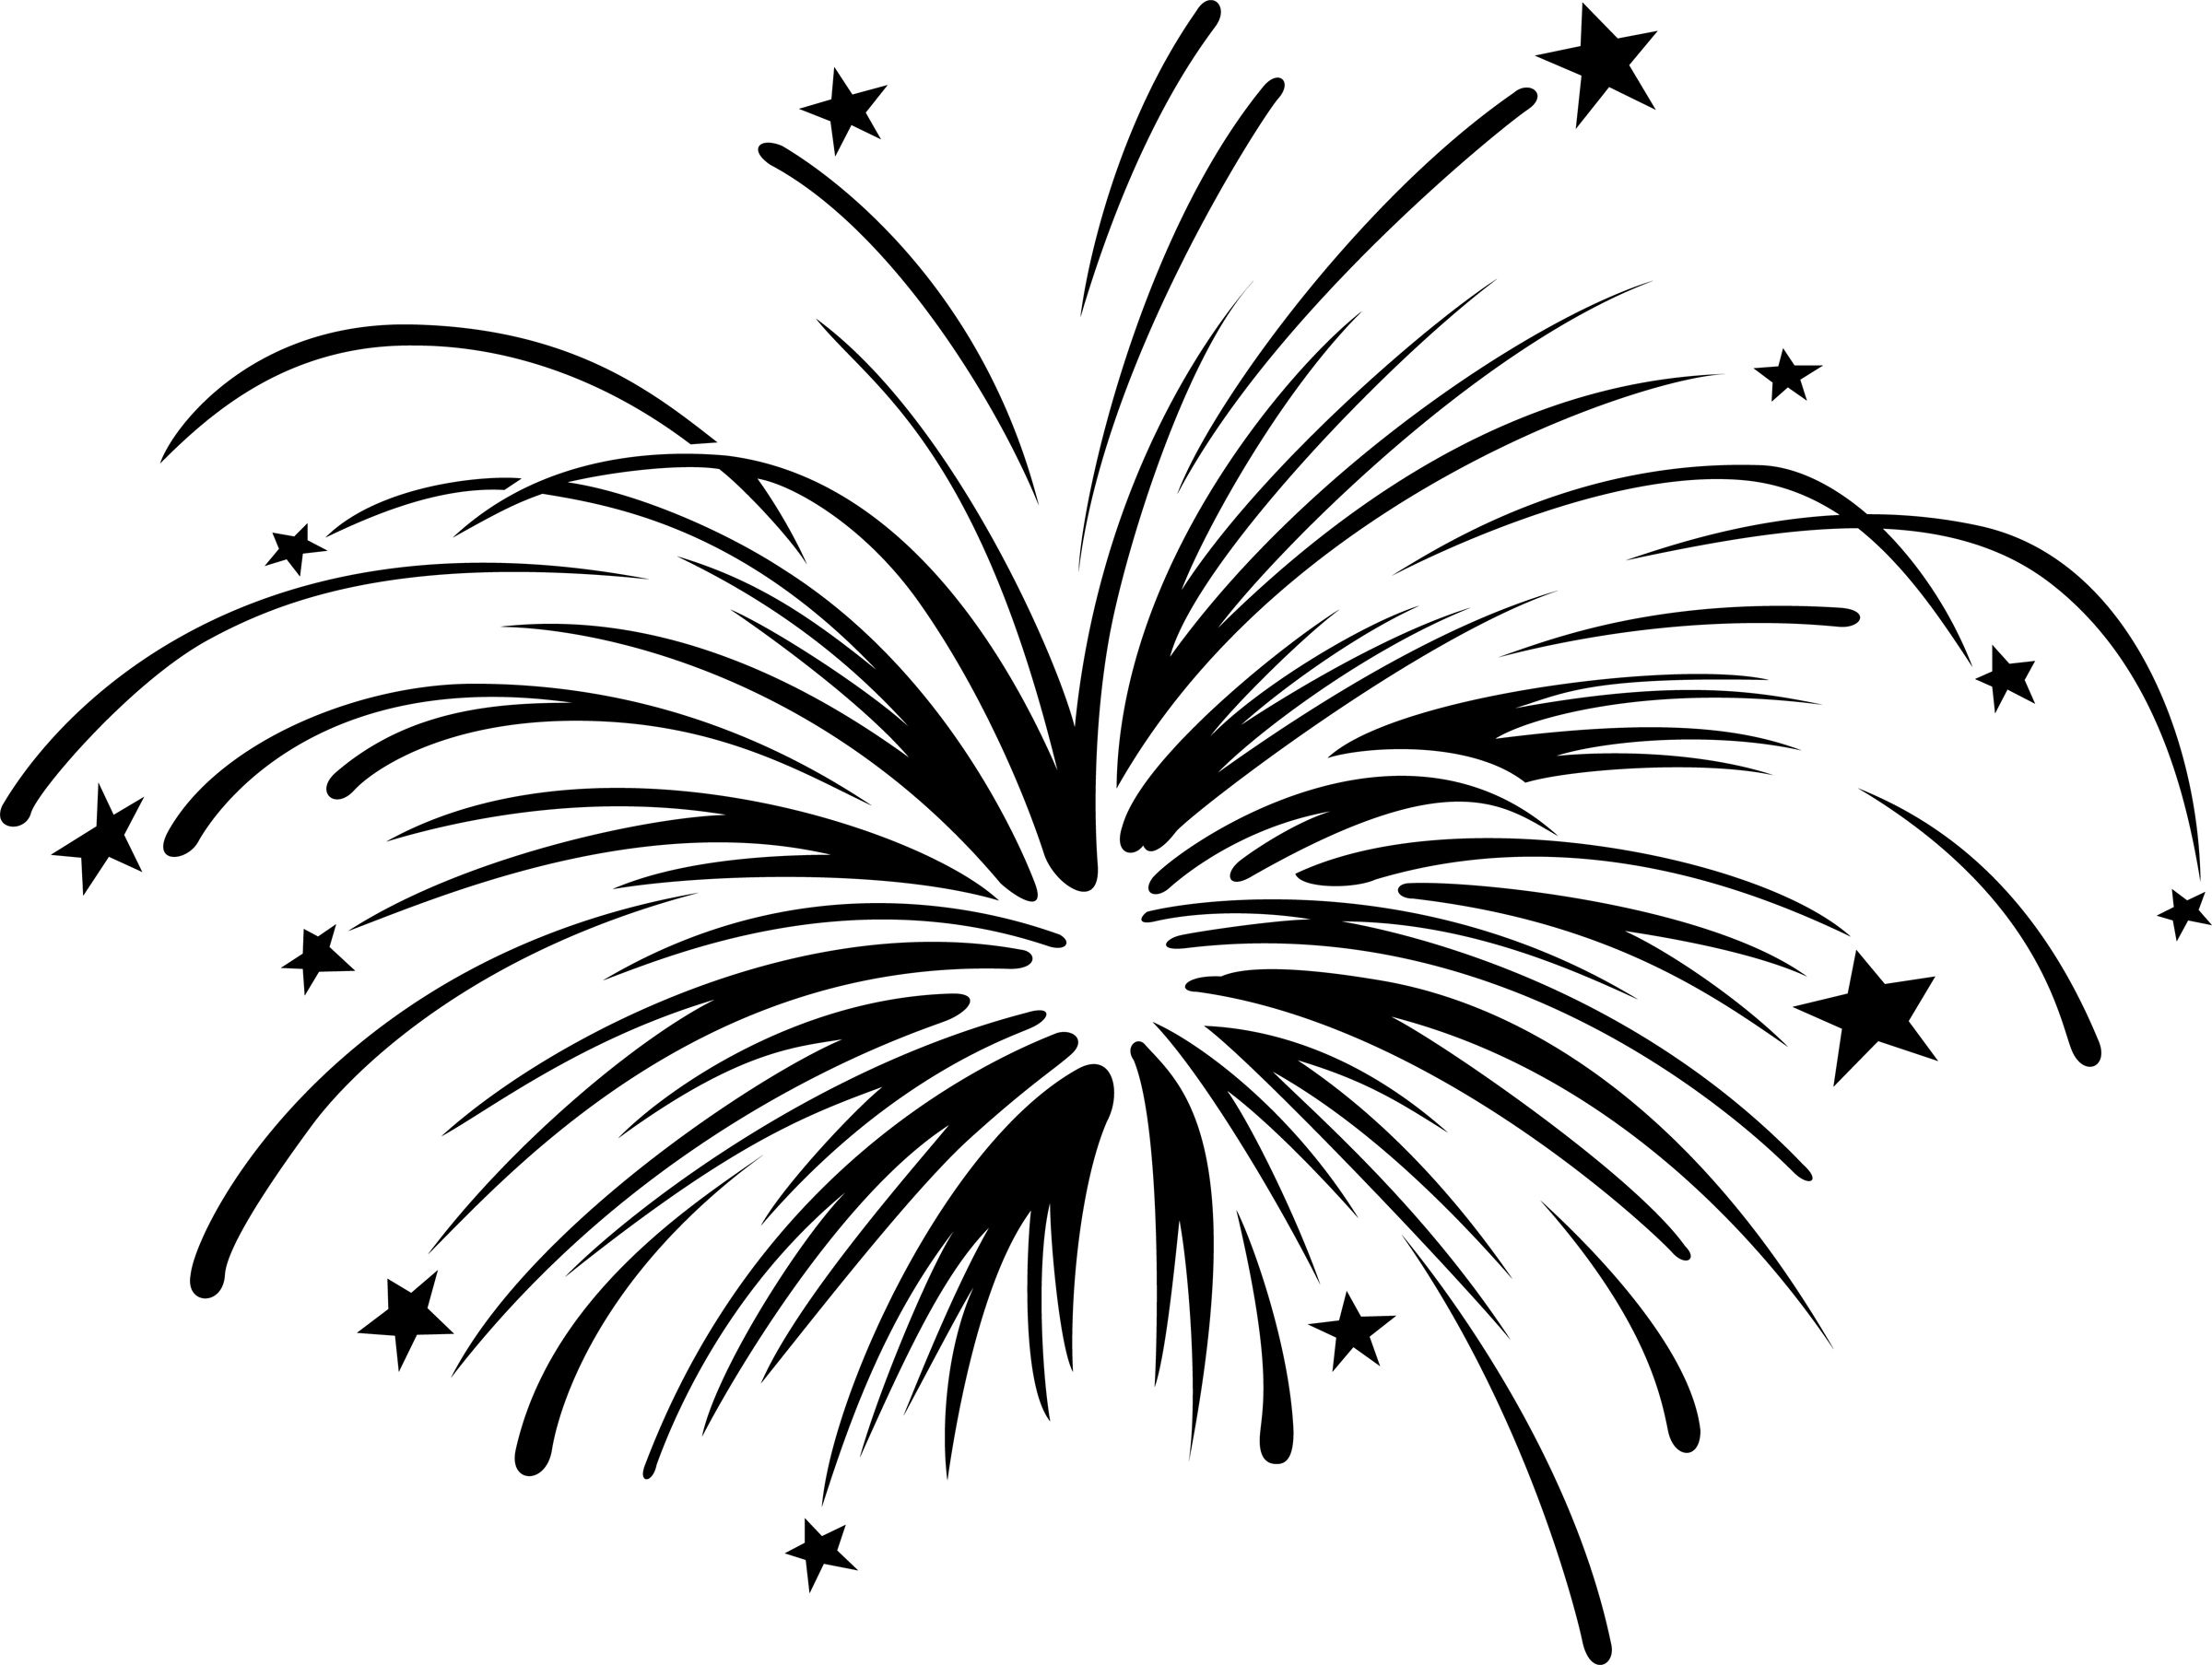 Firework images clipart clip art black and white Fireworks Clipart With Animation | Clipart Panda - Free Clipart ... clip art black and white